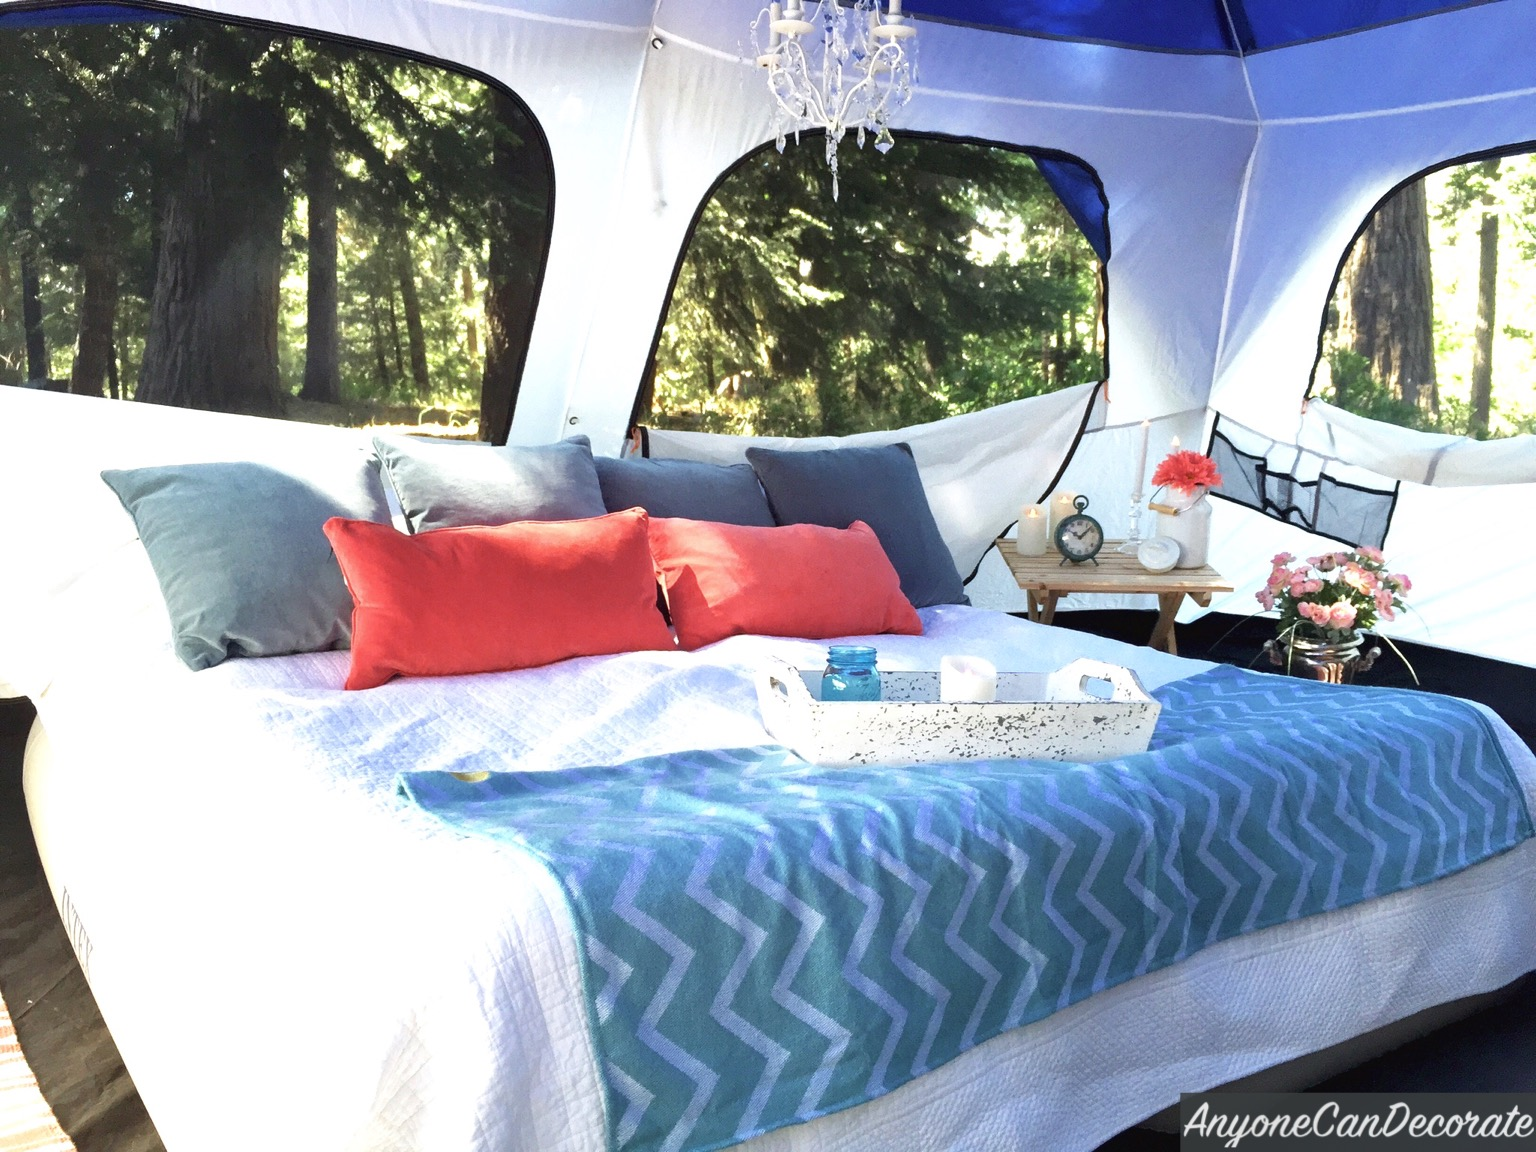 Anyone Can Decorate Gone Glamping A Diy Glamorous